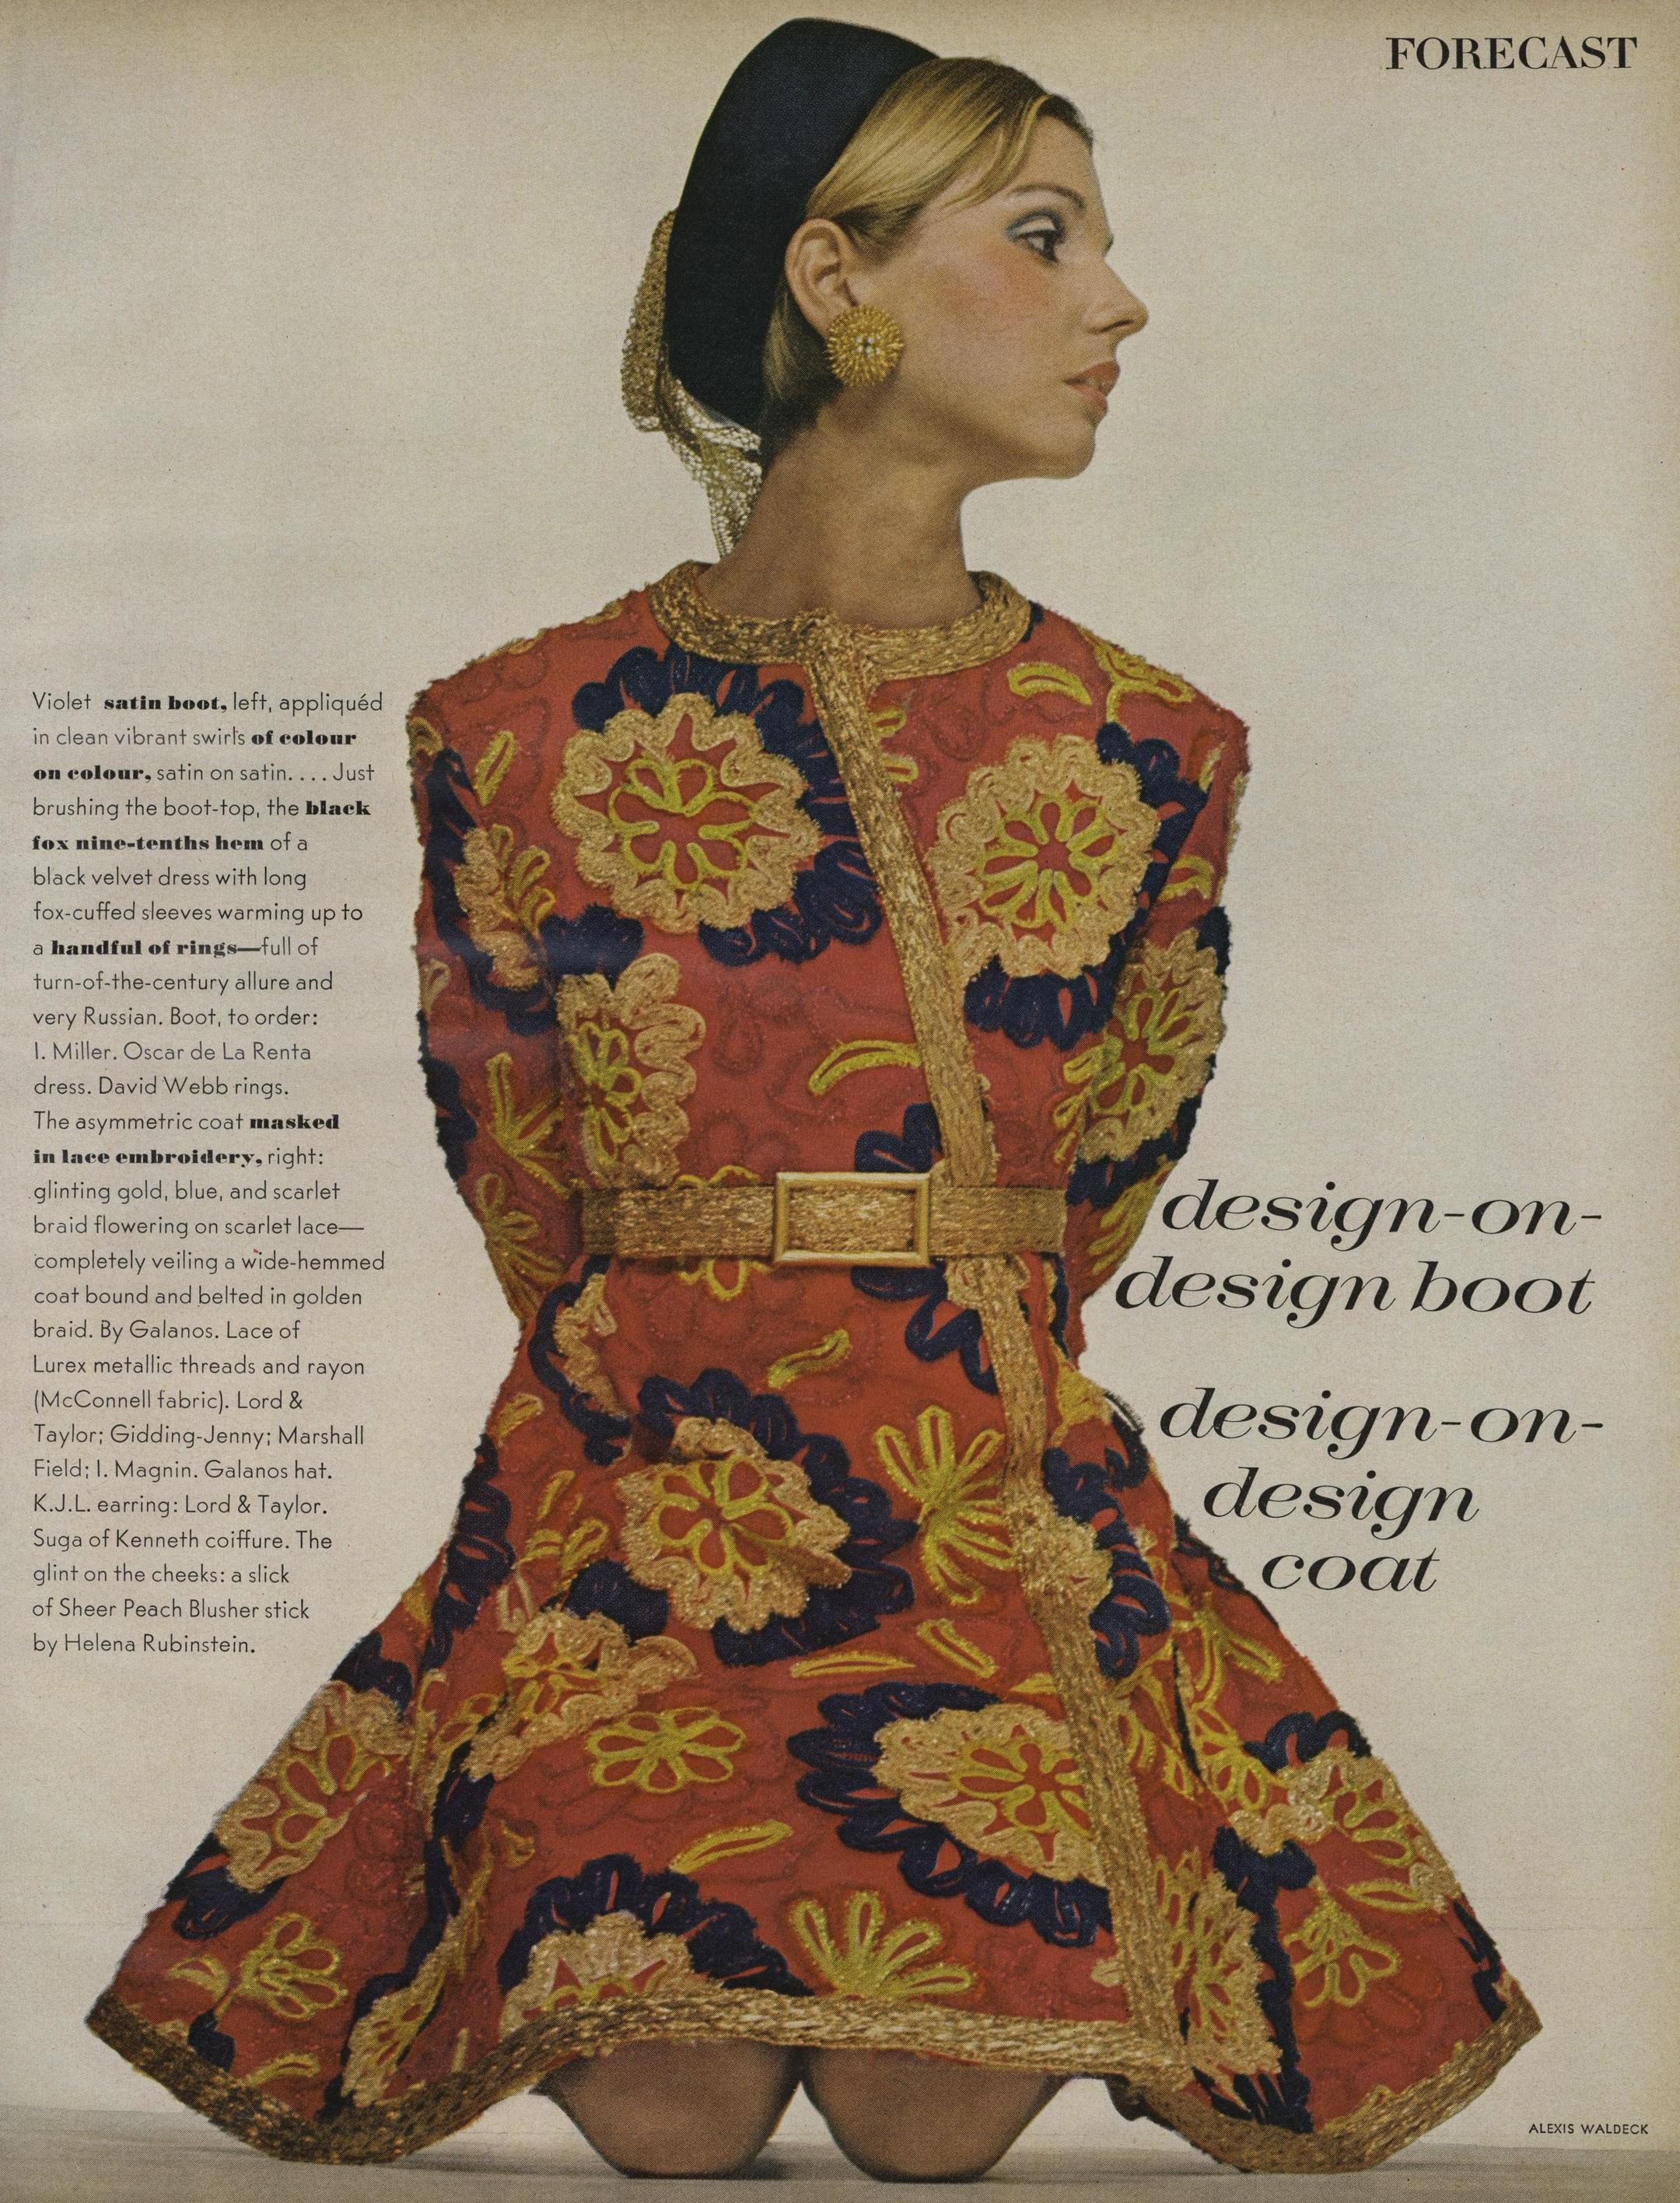 """An asymmetric coatdress of """"glinting gold, blue, and scarlet braid flowering on scarlet lace"""" with a high belt and flared hem. Photographed by Alexis Waldeck for  Vogue , July 1968."""